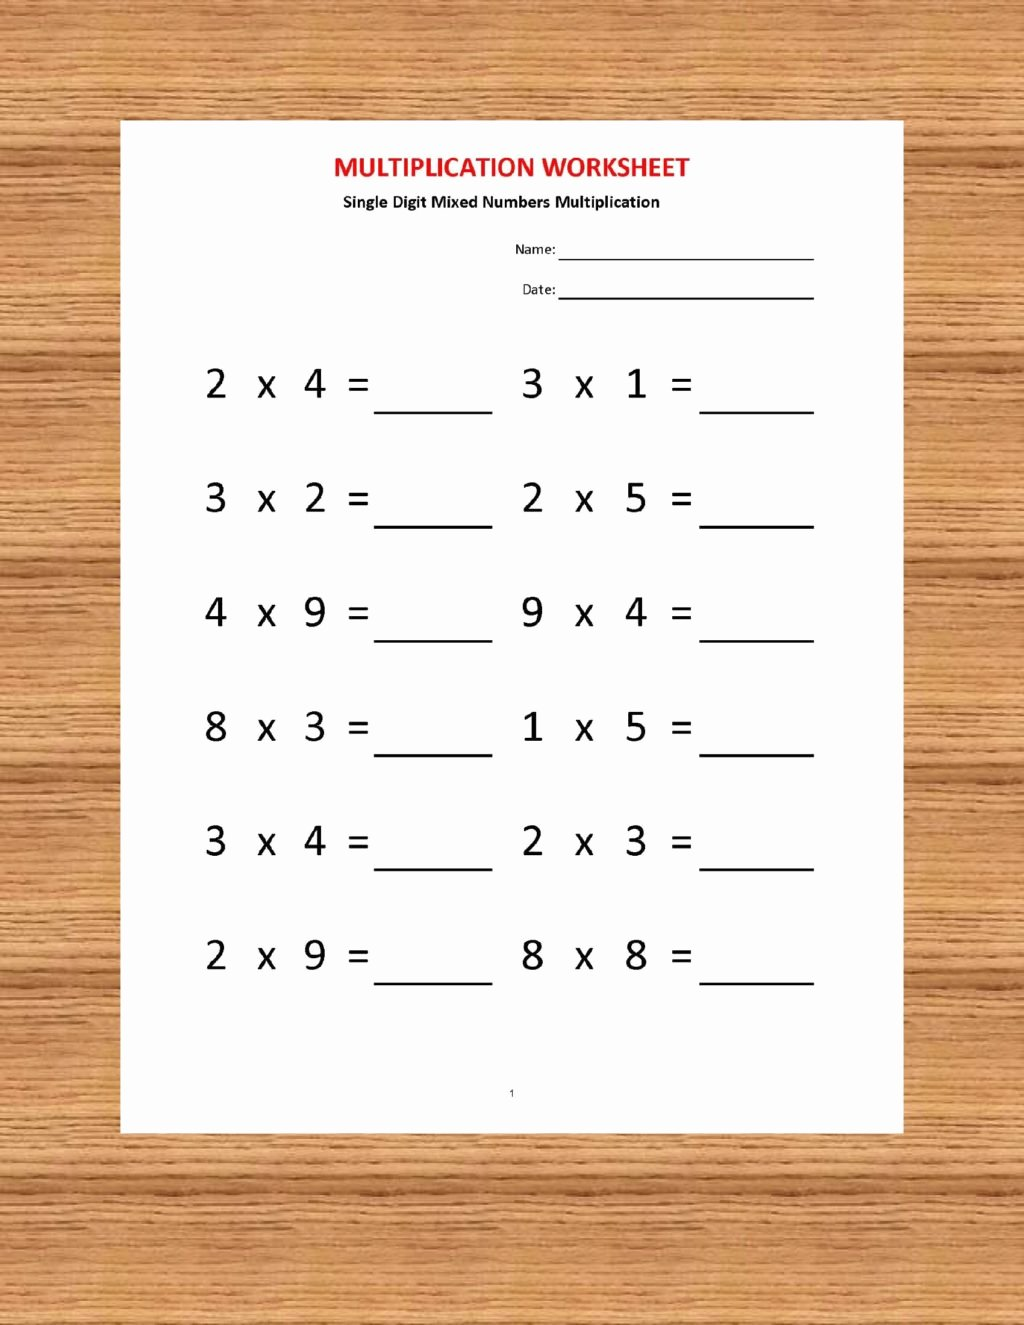 Multiplication Worksheets for Second Grade top Worksheet Multiplication Worksheets for Second Grade